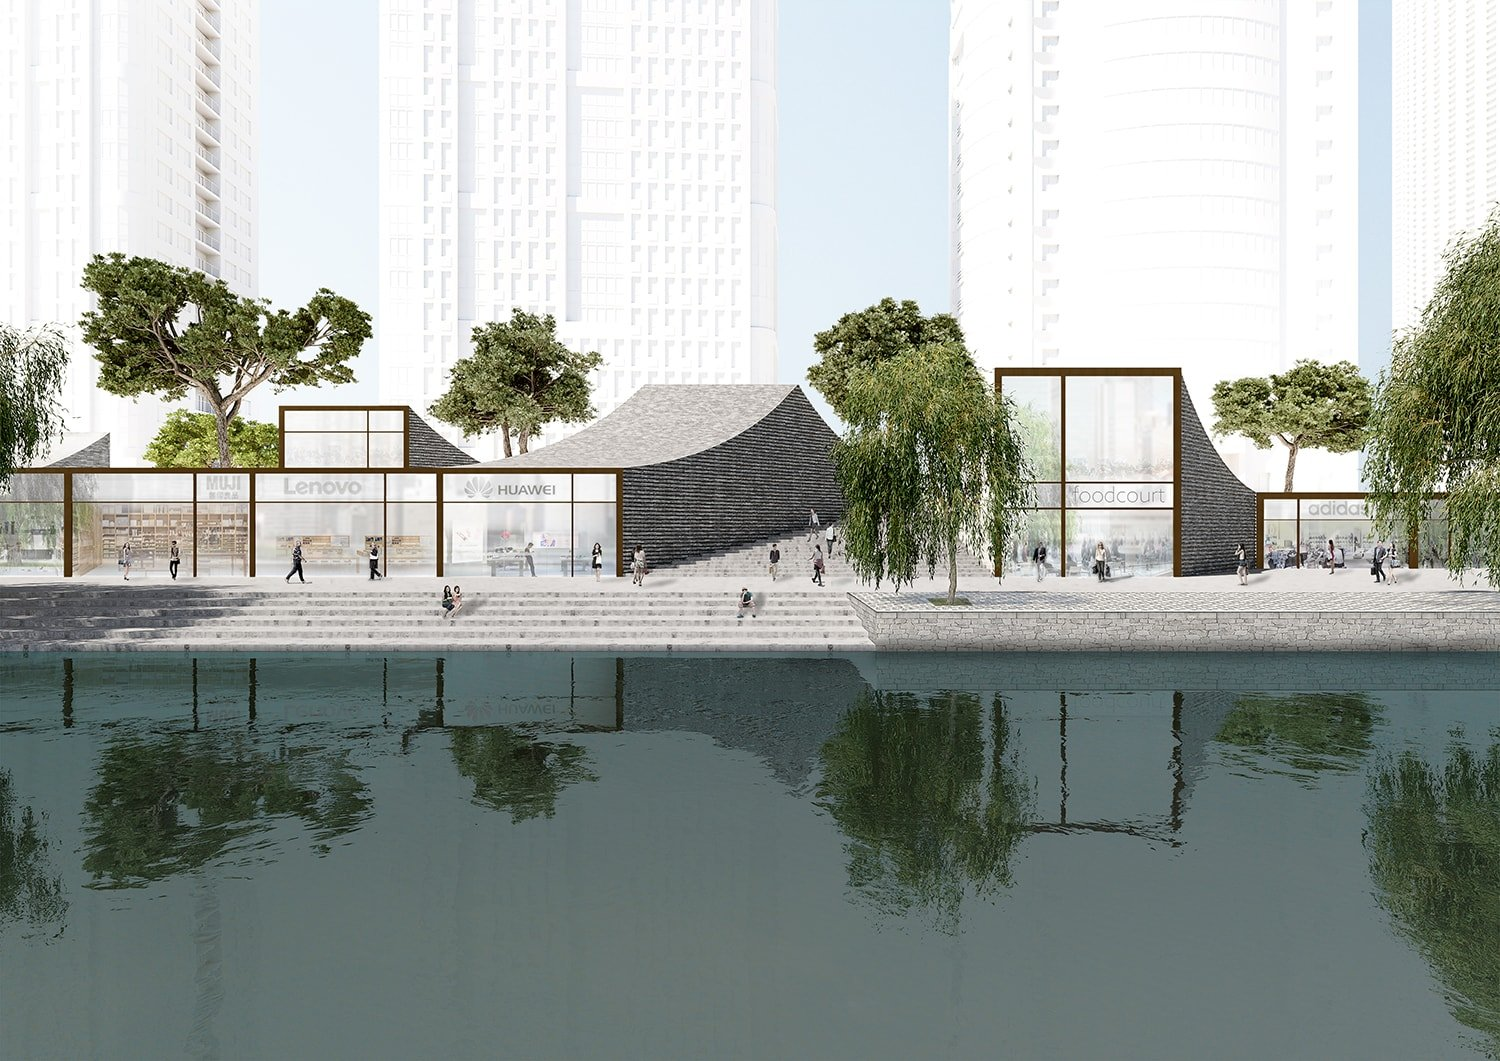 Riverbank front © JADRIC ARCHITEKTUR ZT GmbH & TONGJI ARCHITECTURAL DESIGN AND RESEARCH INSTITUTE